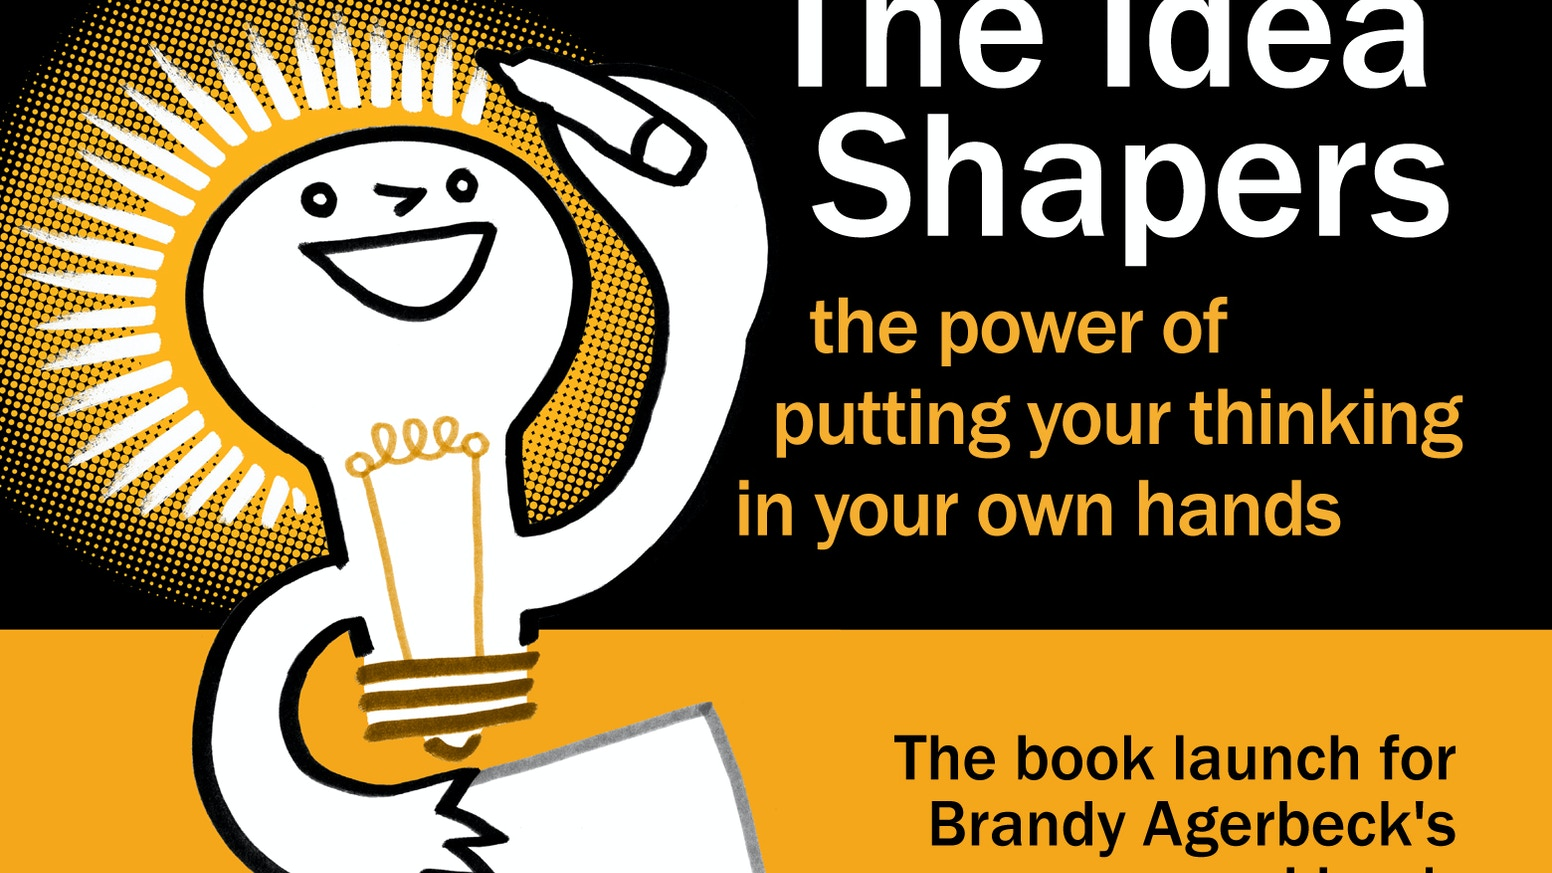 The Idea Shapers book gives you the power to put your thinking into your own hands.